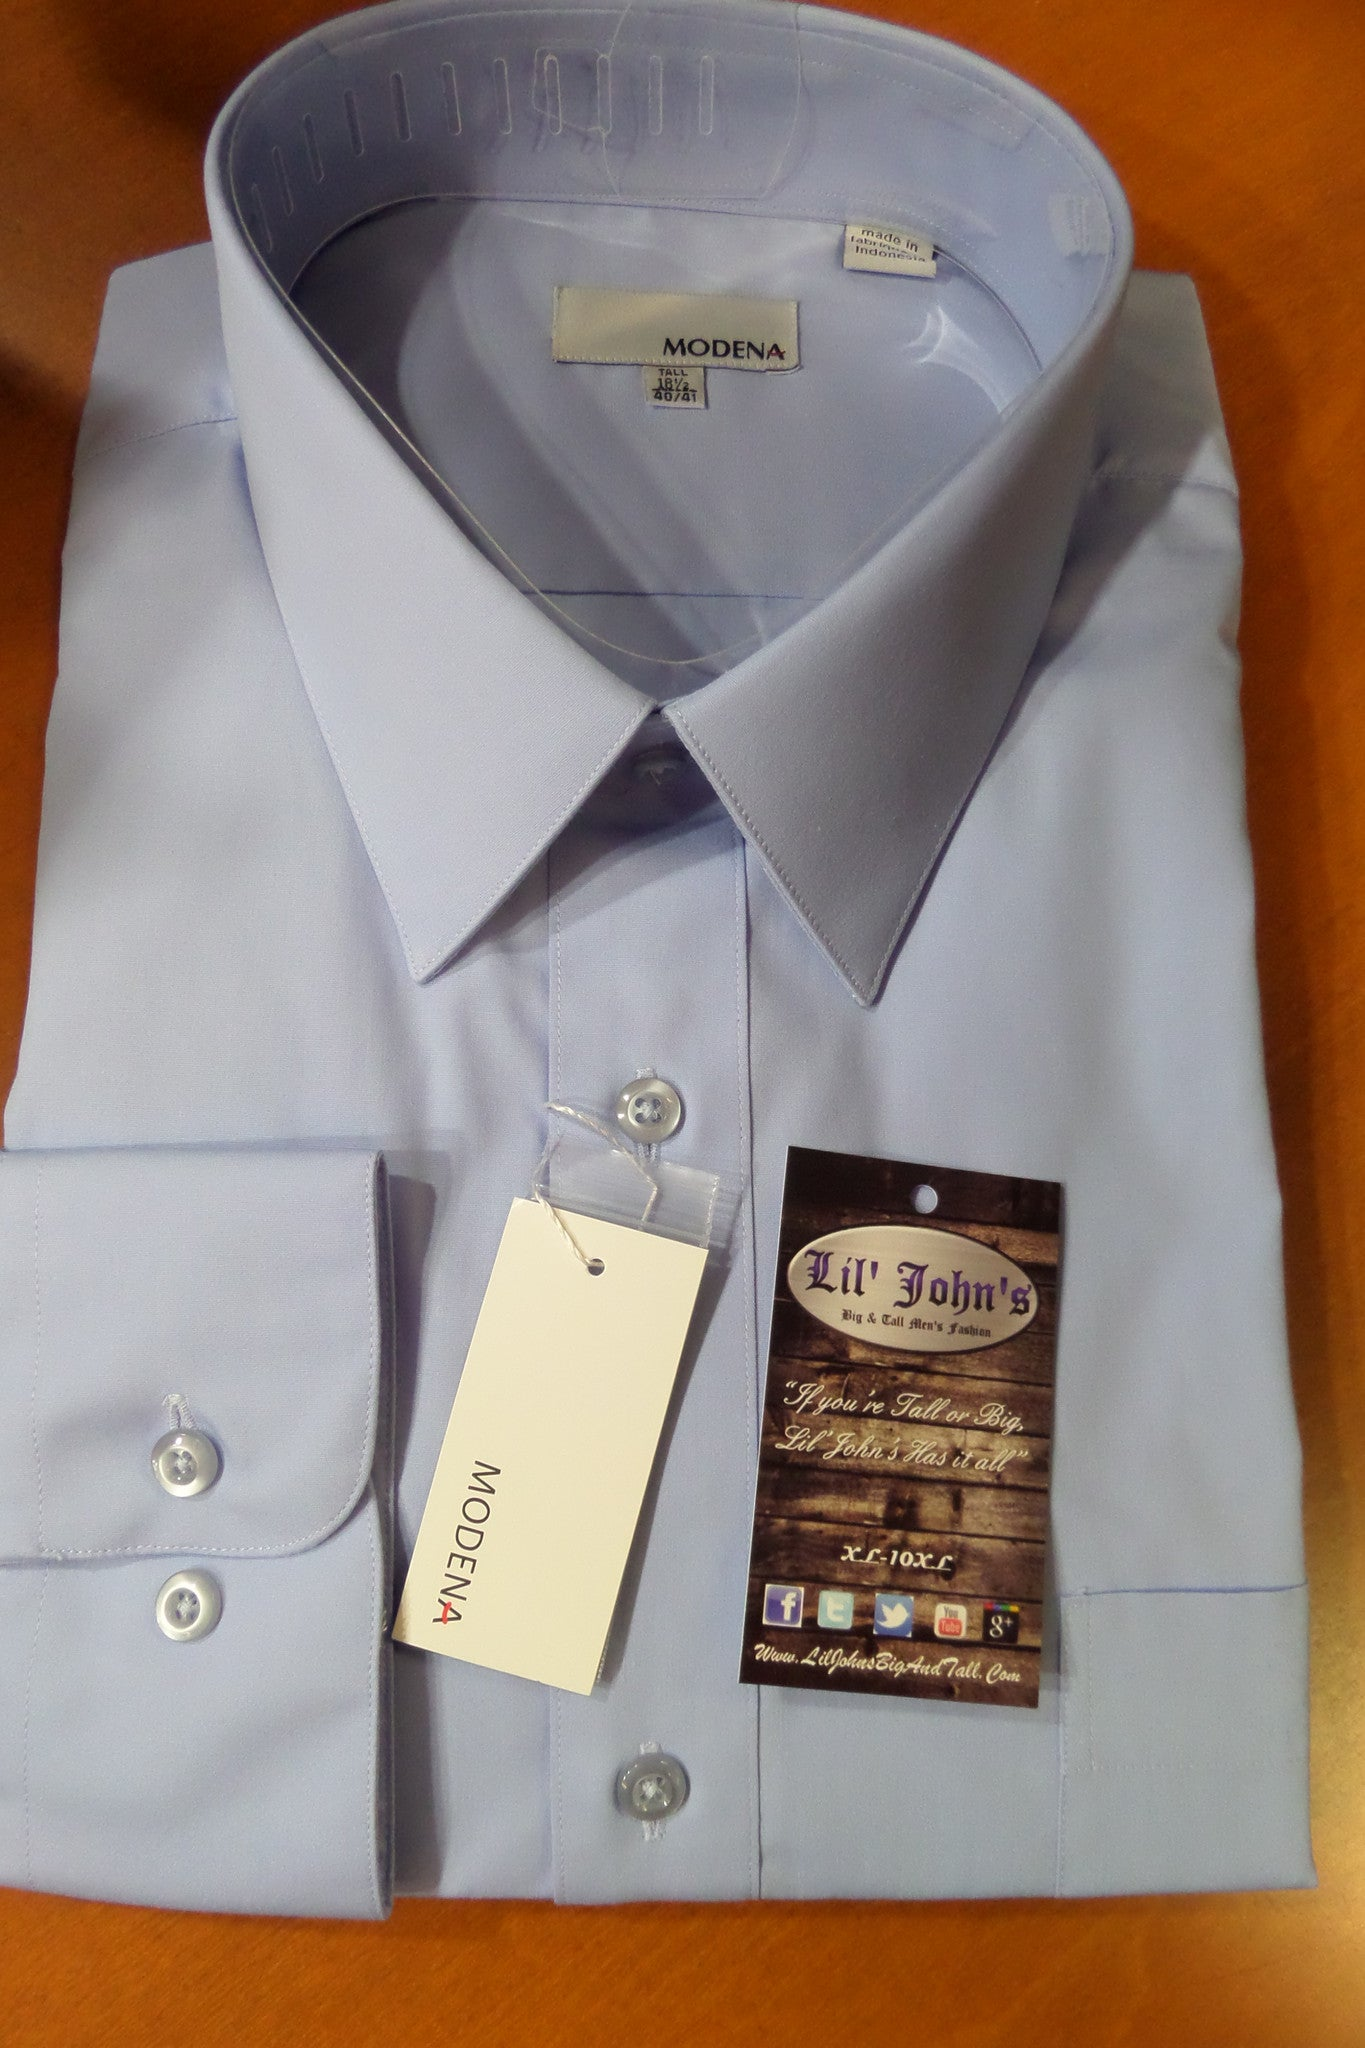 MODENA POWDER BLUE POPLIN DRESS SHIRT